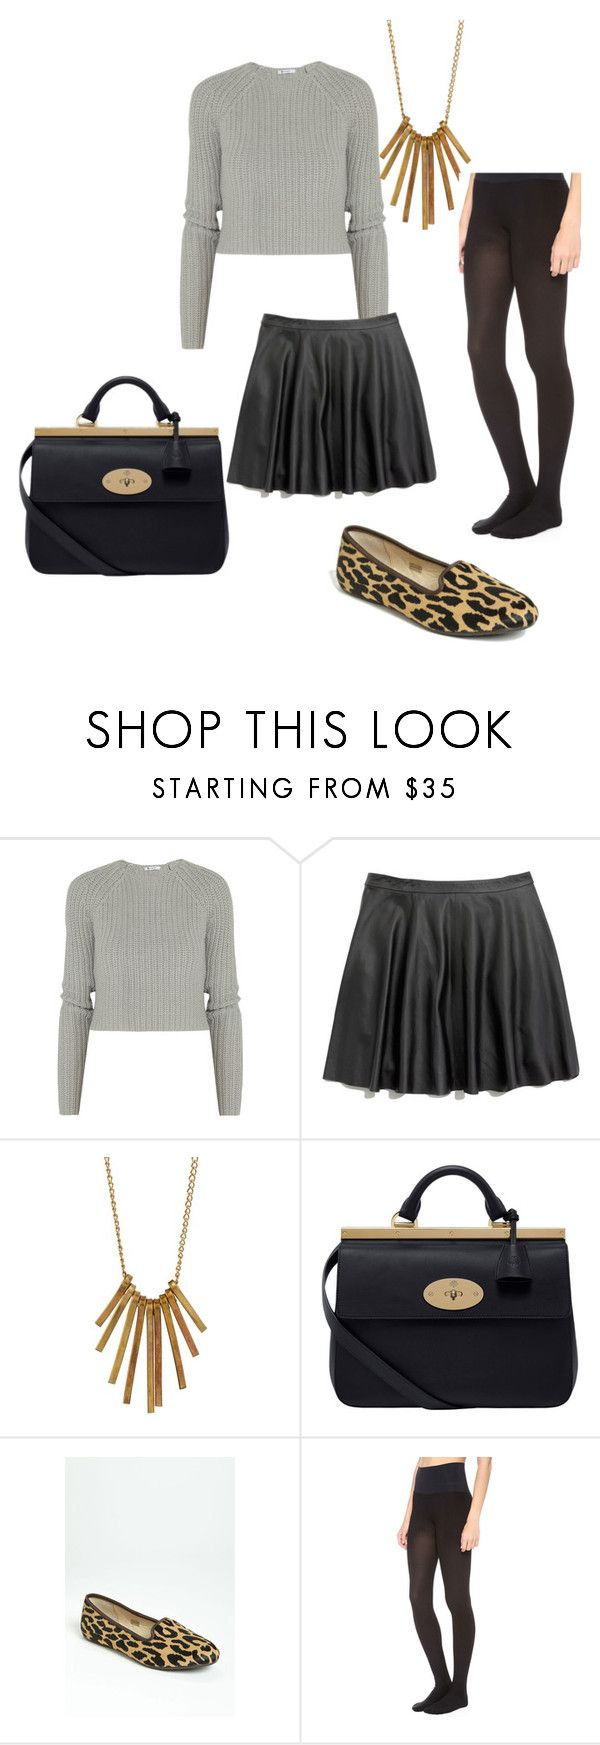 """""""Yo Soy la Luz"""" by lacybecnel ❤ liked on Polyvore featuring T By Alexander Wang, Madewell, Made Jewelry, Mulberry, UGG Australia and Commando"""